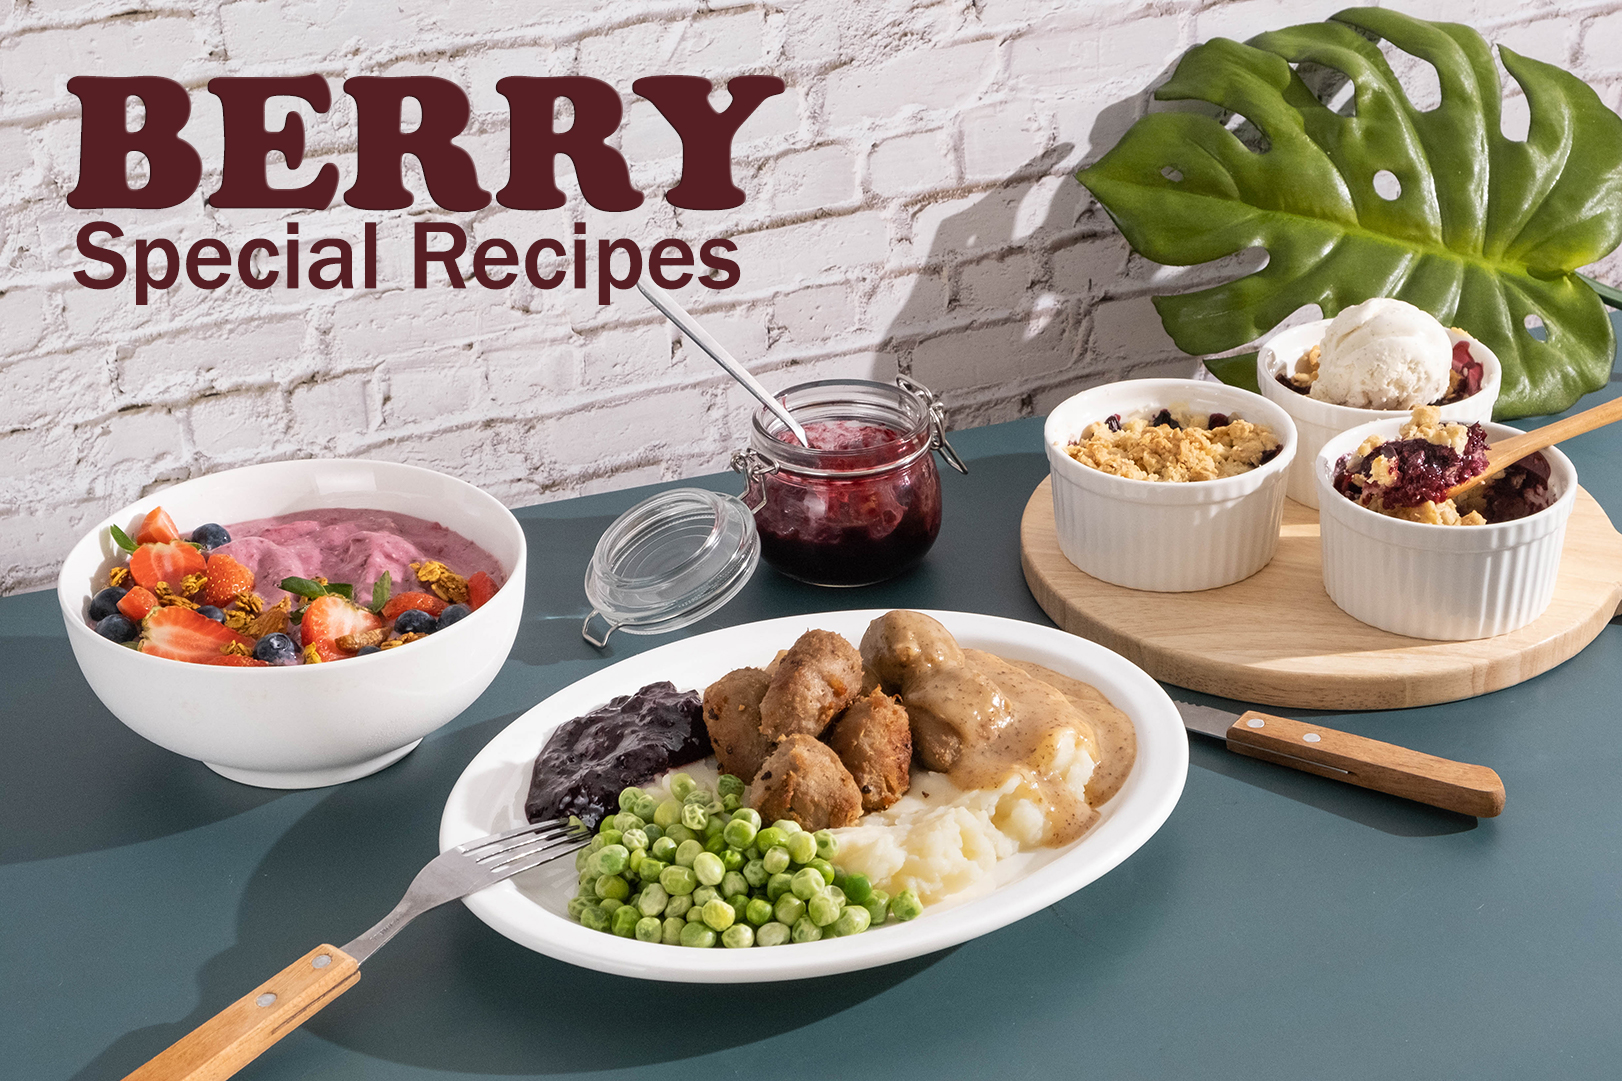 840x560-3-in-1-w-Title-Berry-Special